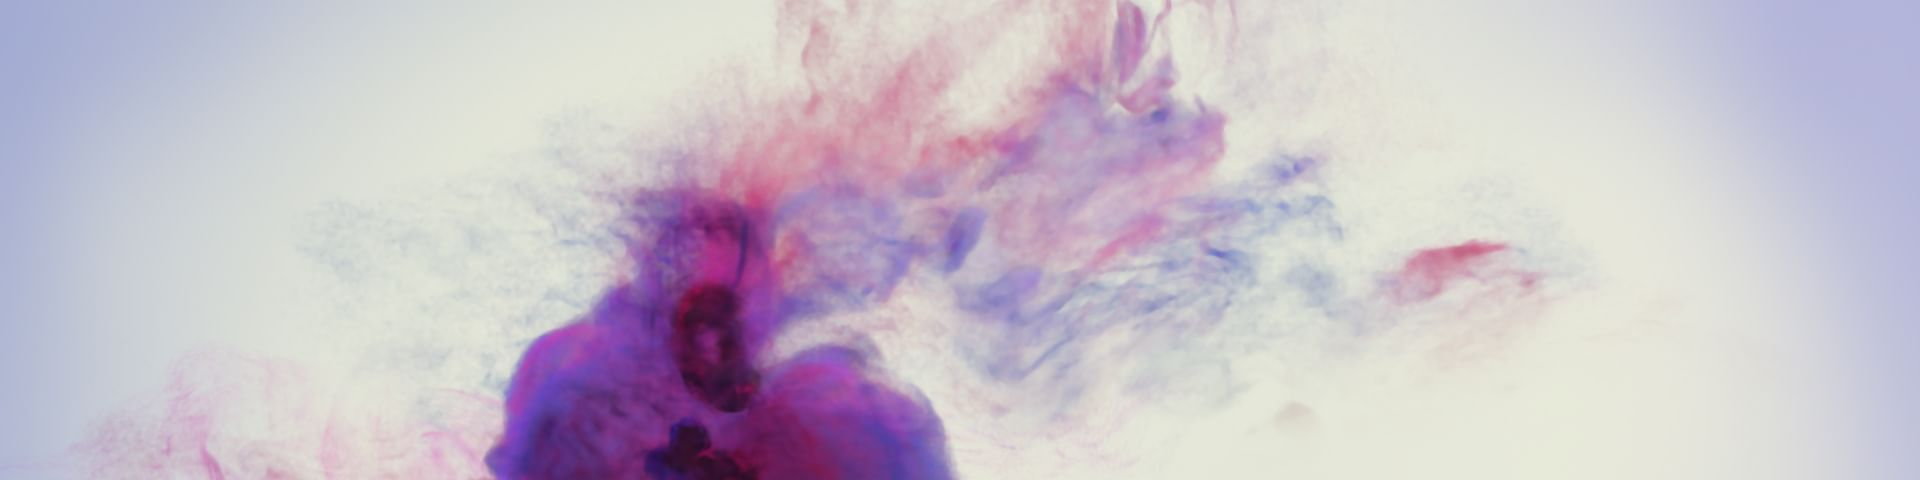 Masterclass Wes Anderson